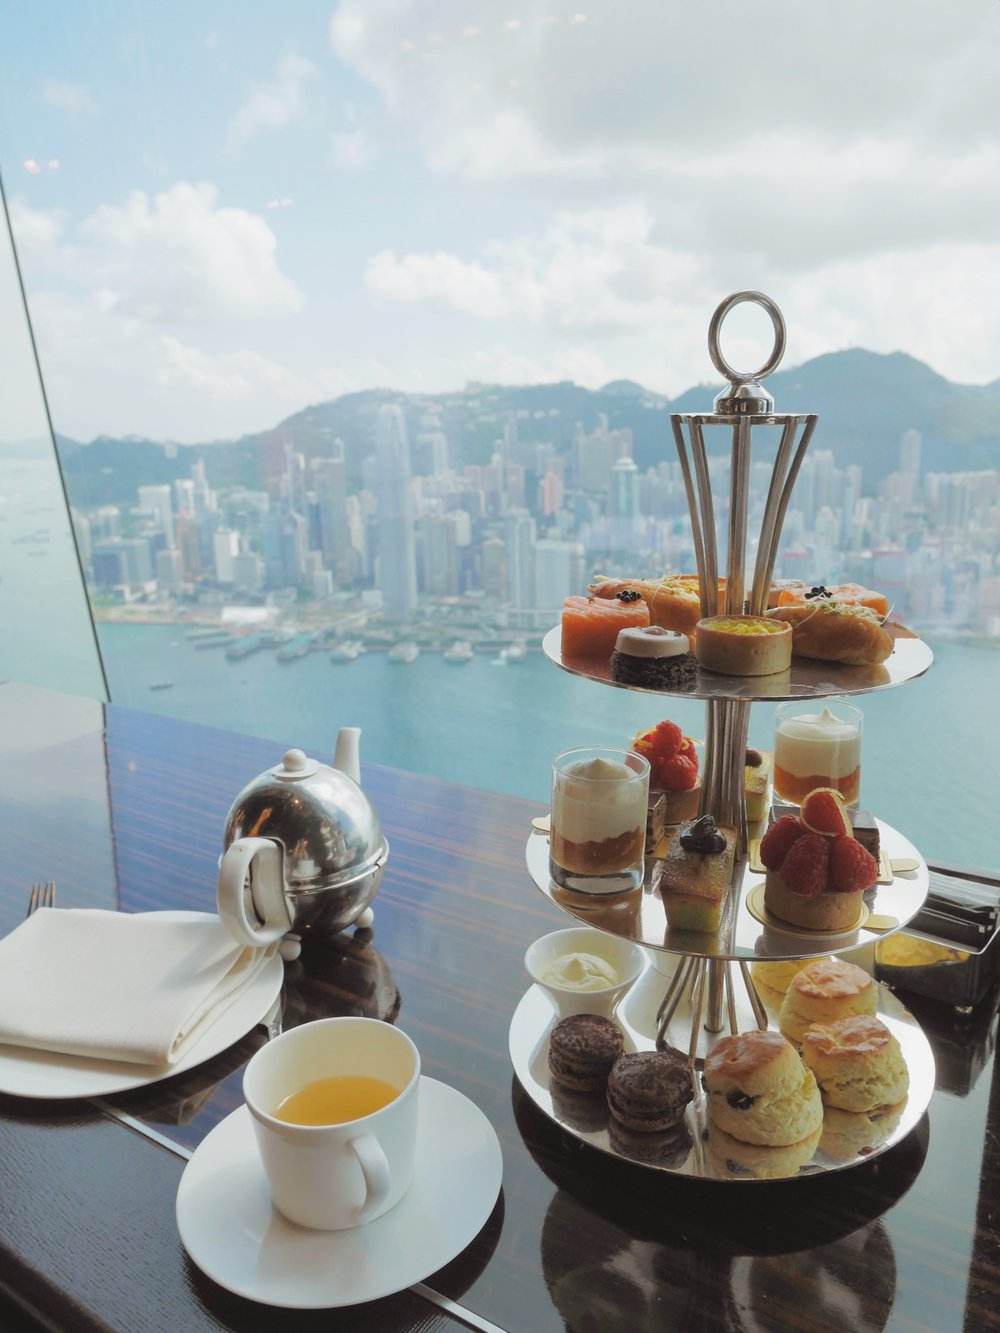 The tea for 2 is served with 2 drinks (TWG Tea) and a set of savory, sweet treats, scones and a view of Hong Kong, 102 stories up.